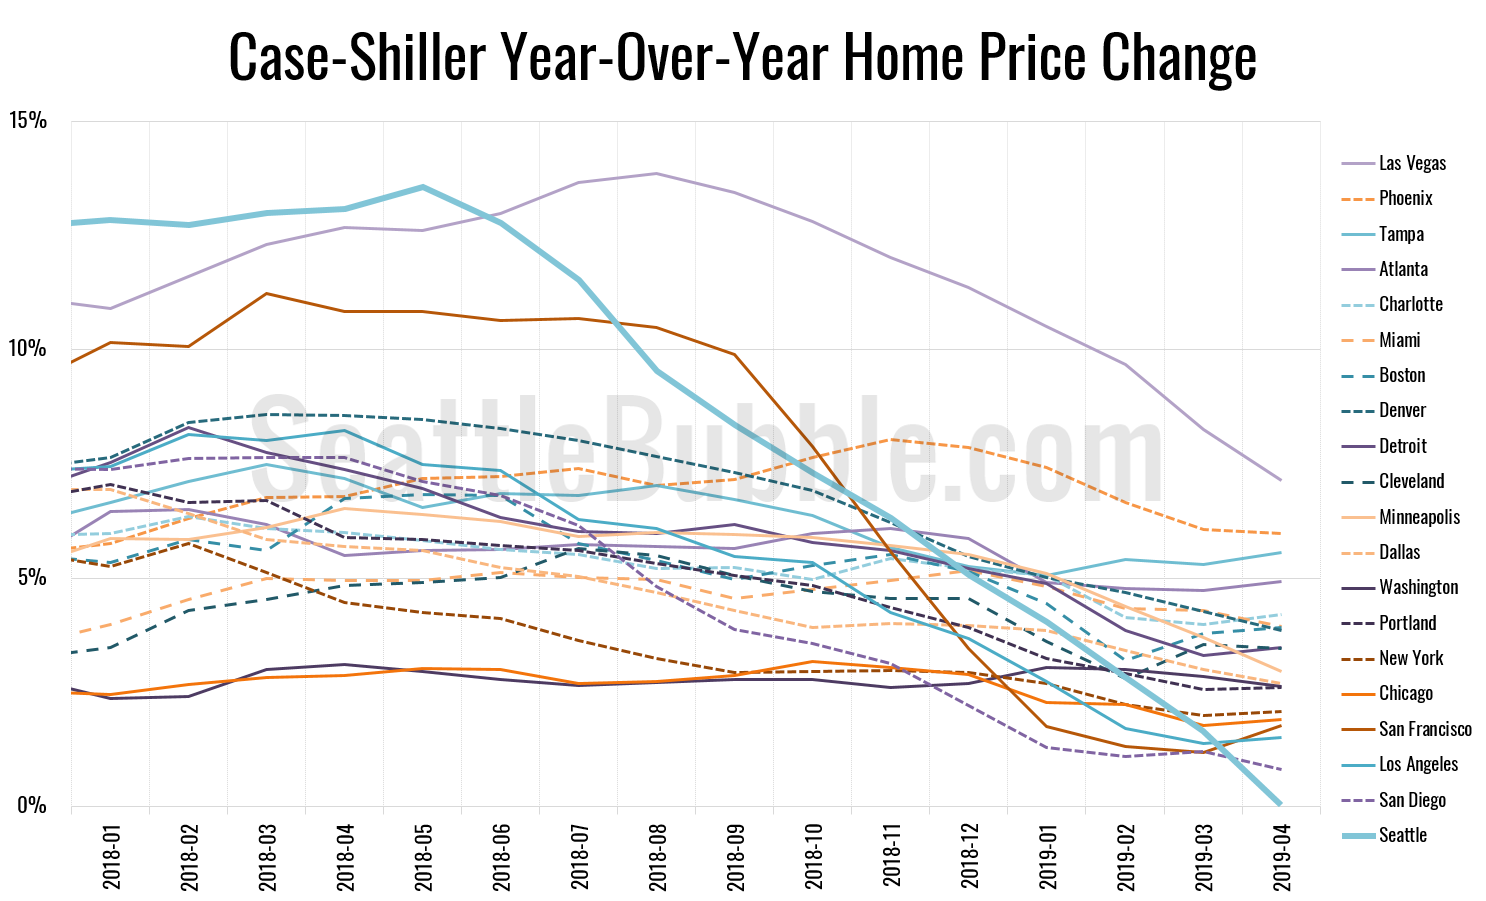 Case-Shiller Year-Over-Year Home Price Change